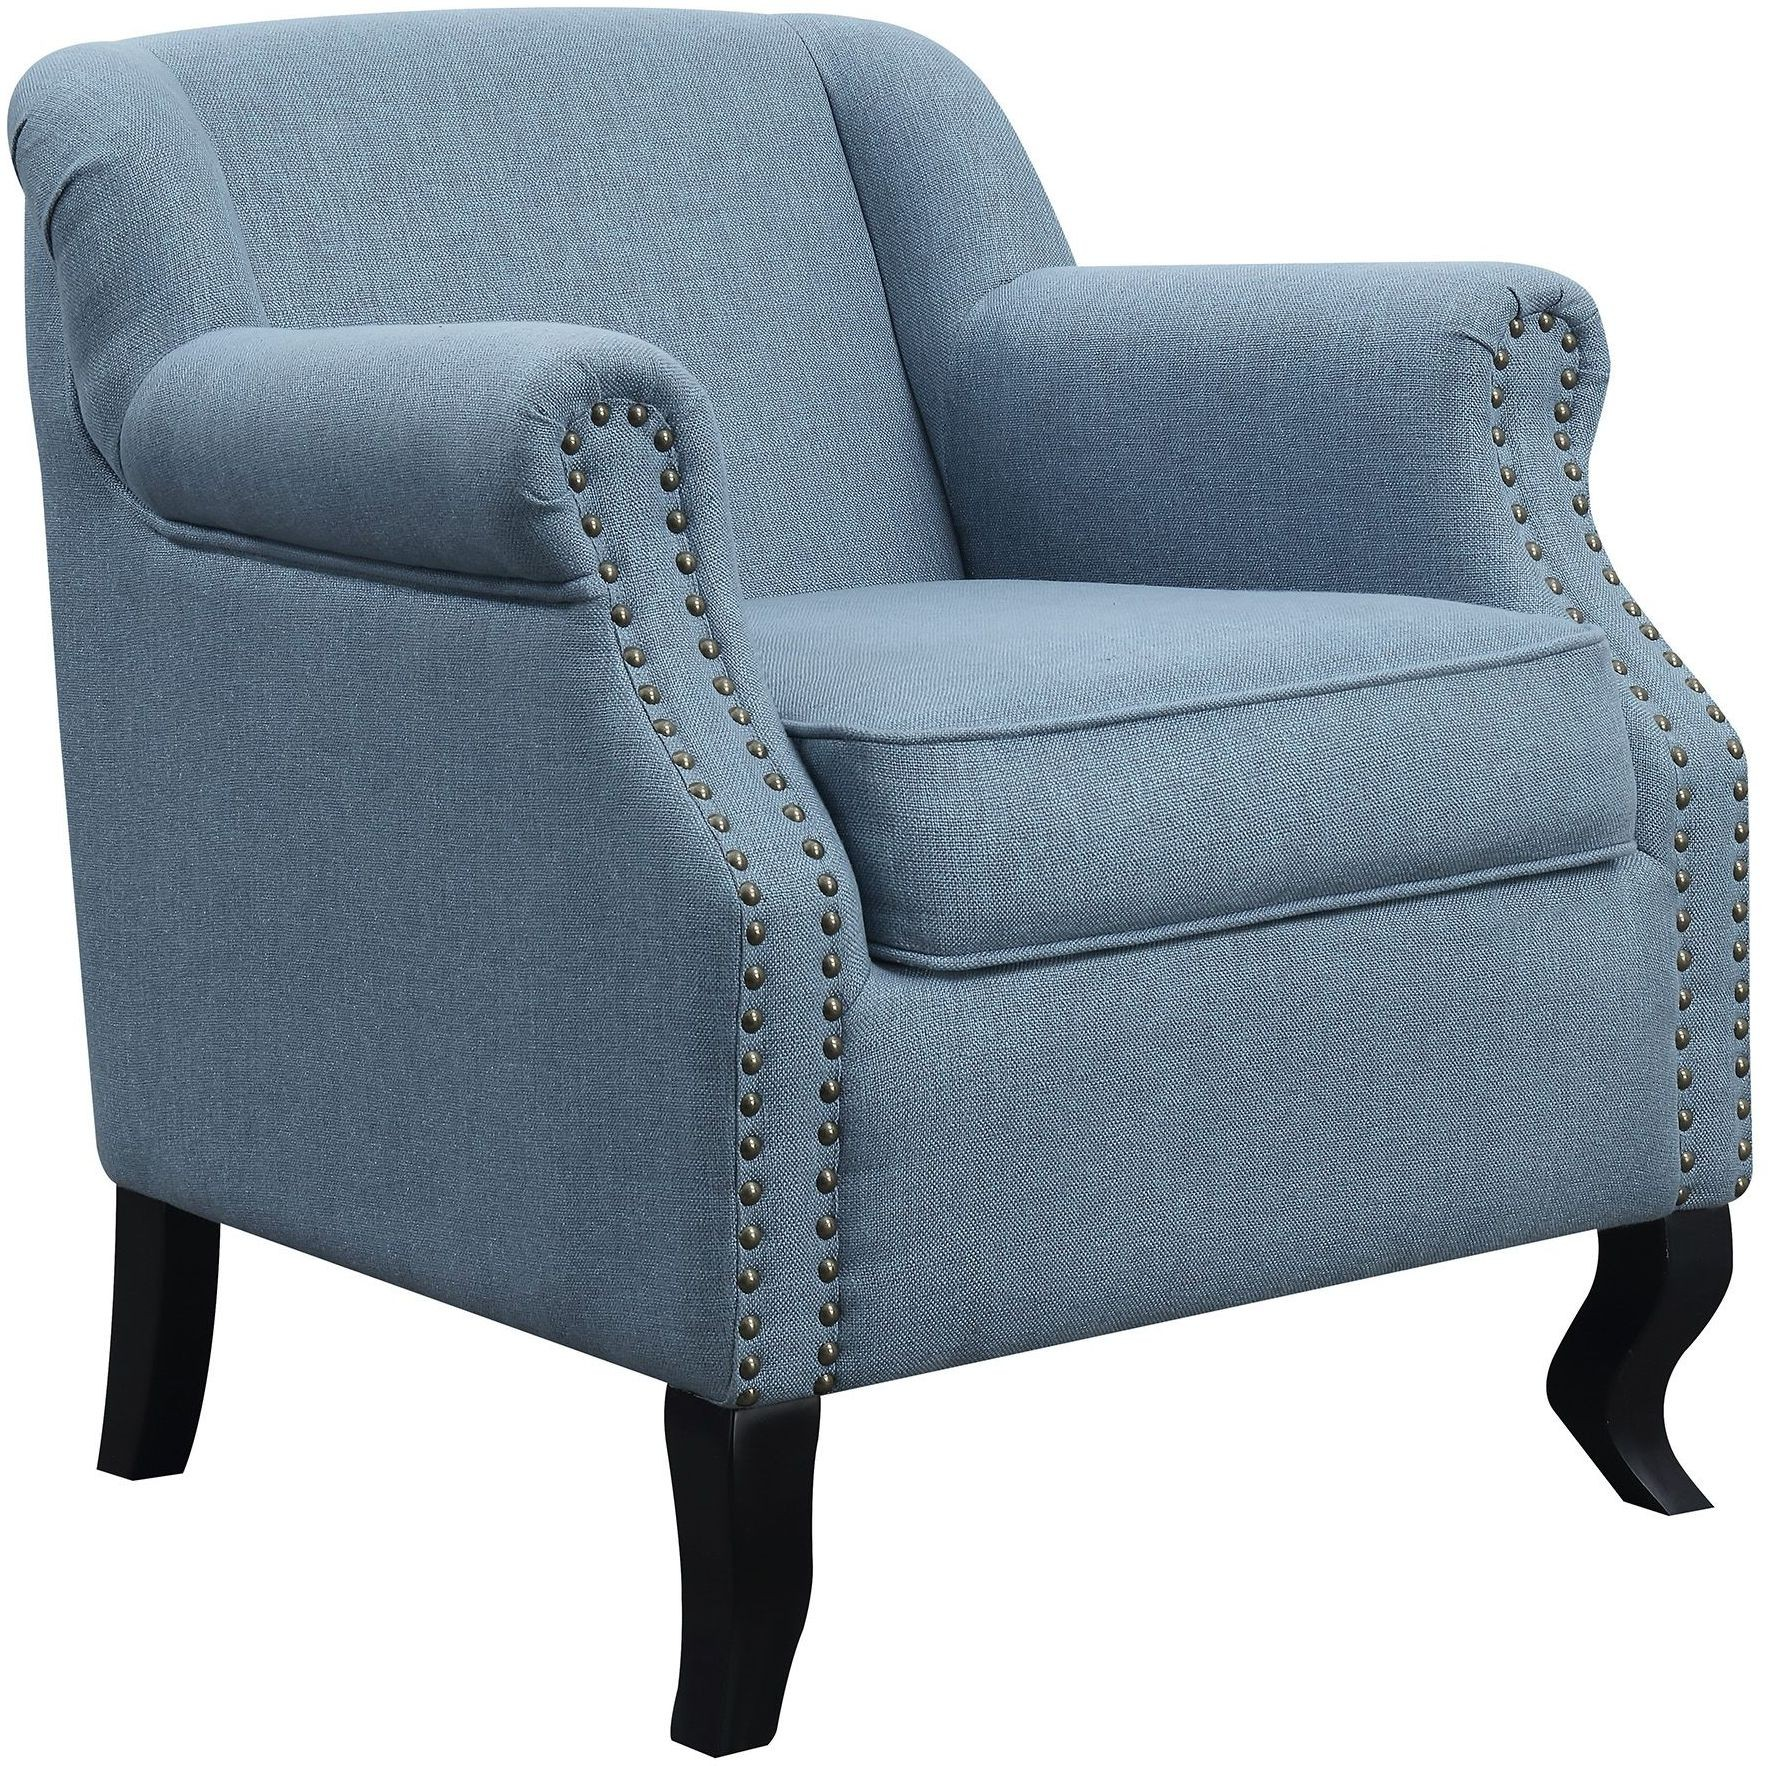 Light Blue Accent Chair from Coaster | Coleman Furniture